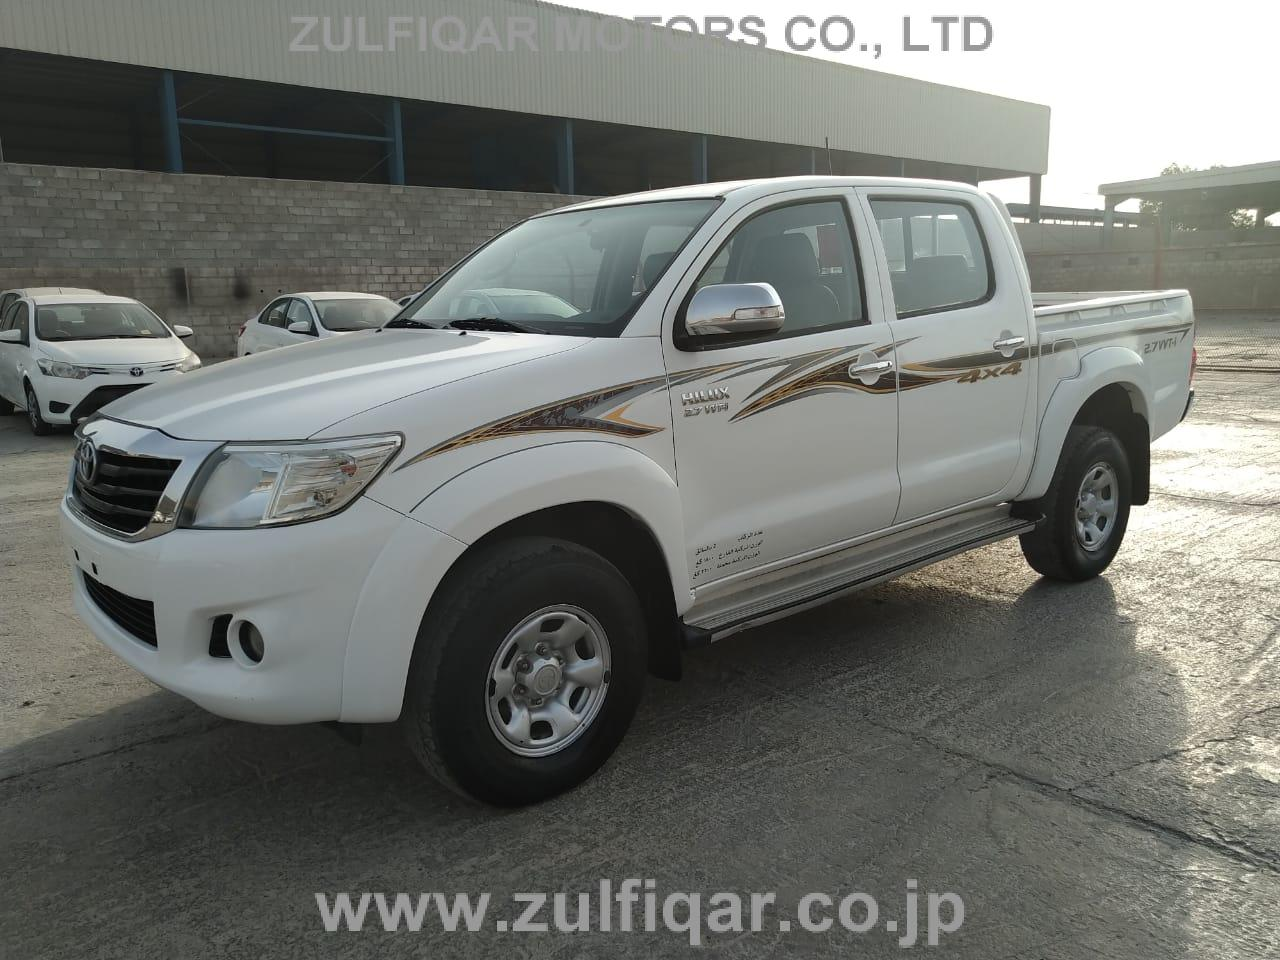 TOYOTA HILUX PICK UP 2015 Image 4